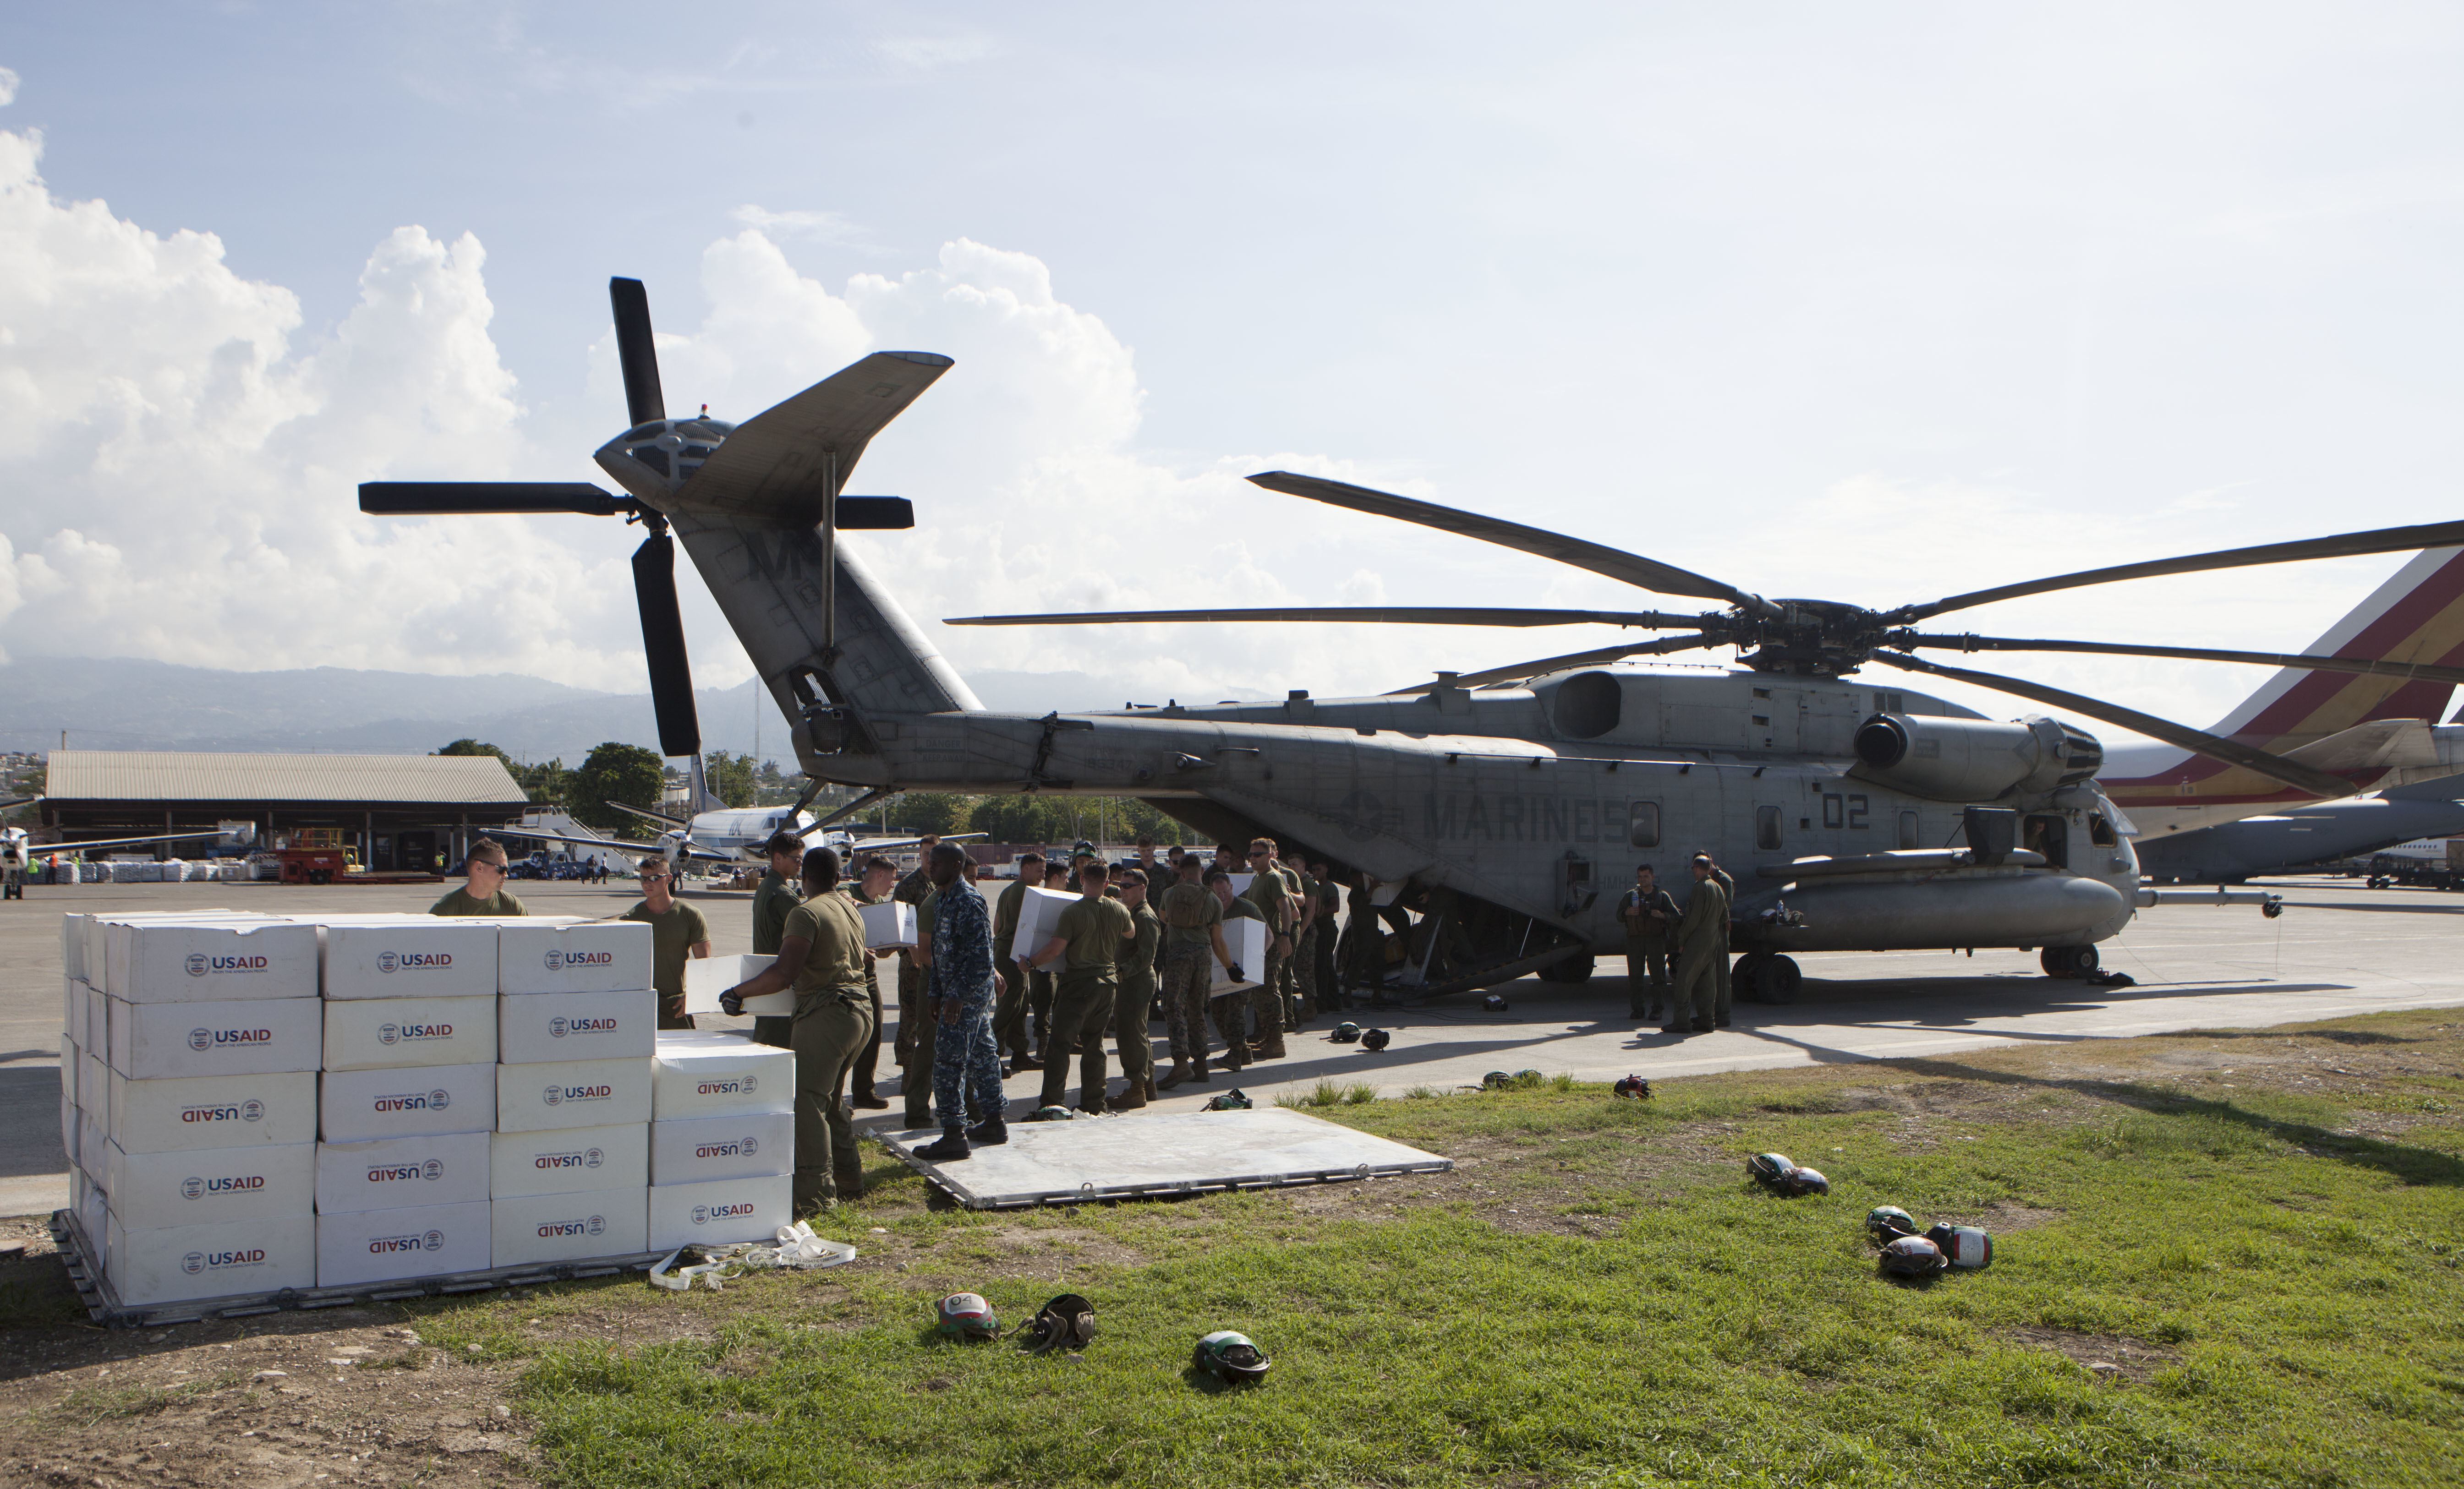 U.S. Marines with Special Purpose Marine Air-Ground Task Force-Southern Command deployed in support of Joint Task Force Matthew, load boxes from United States Agency of International Development aboard a CH-53E Super Stallion helicopter in preparation to deliver the supplies to locals affected by Hurricane Matthew at Port-au-Prince, Haiti, Oct. 10, 2016. US Marine Corps photo.